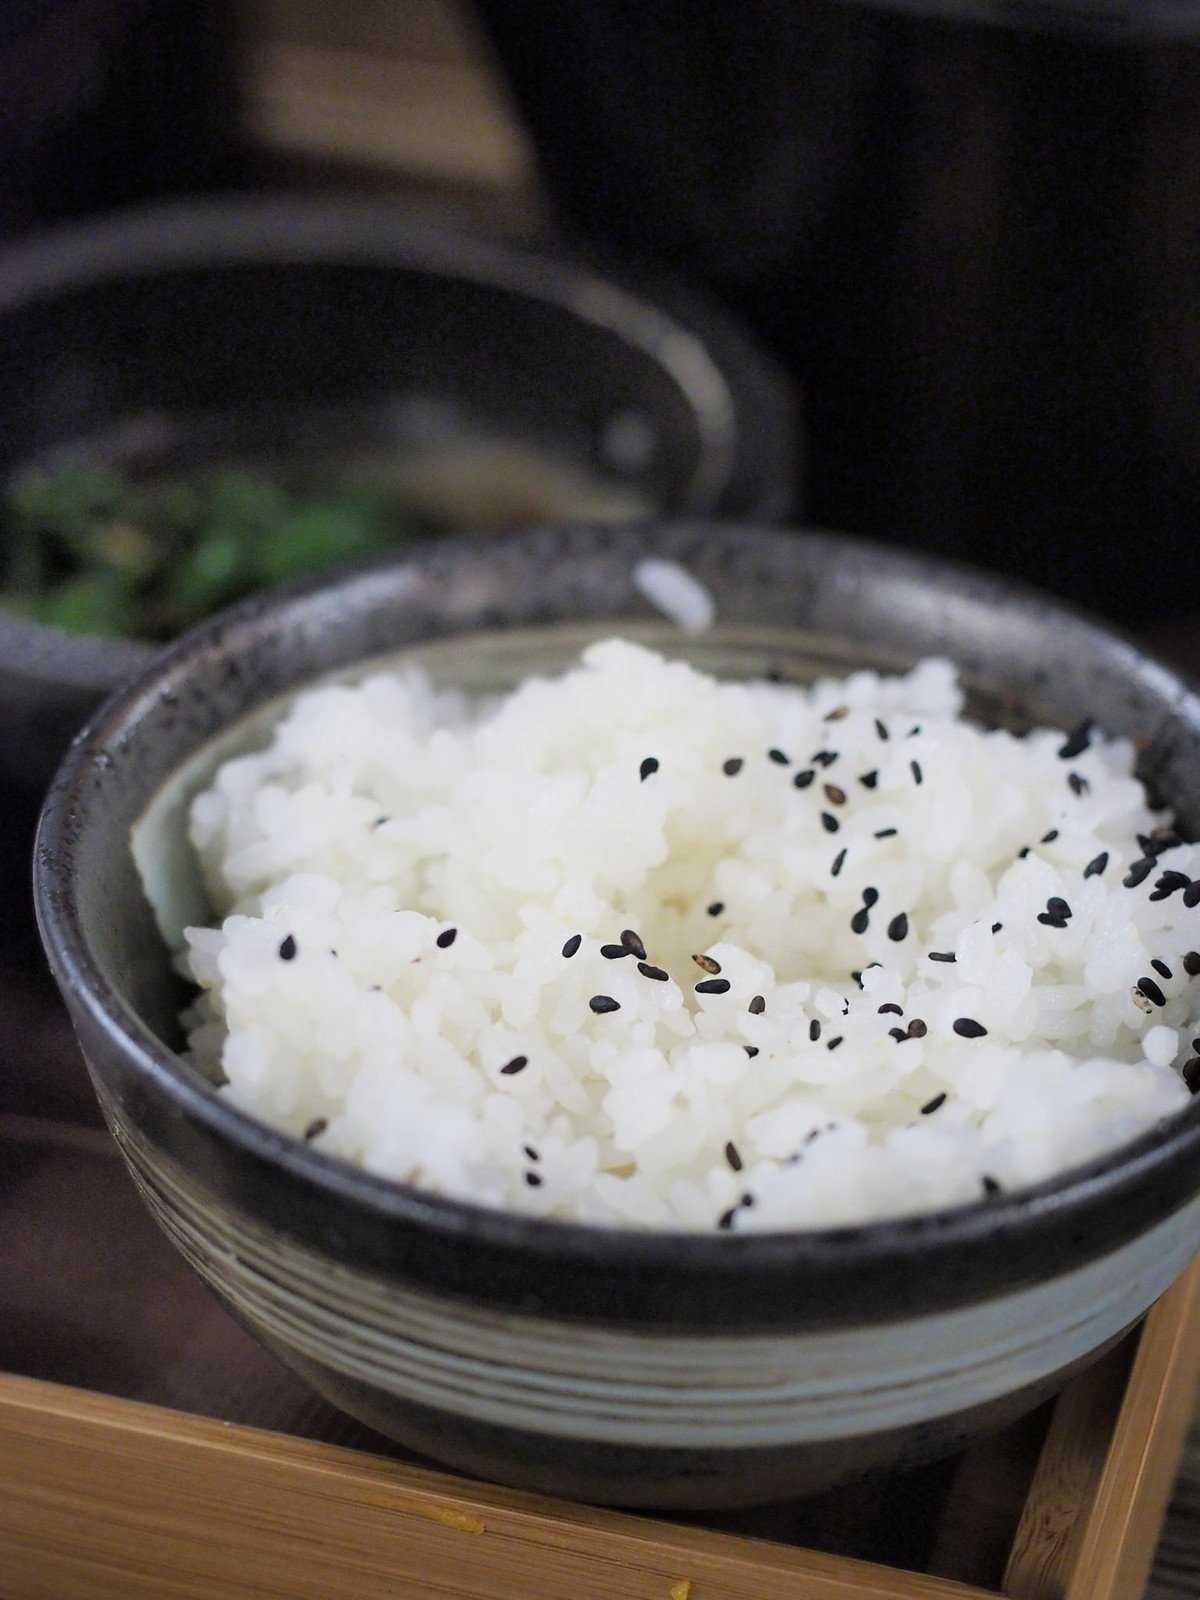 A bowl of fragrant white rice